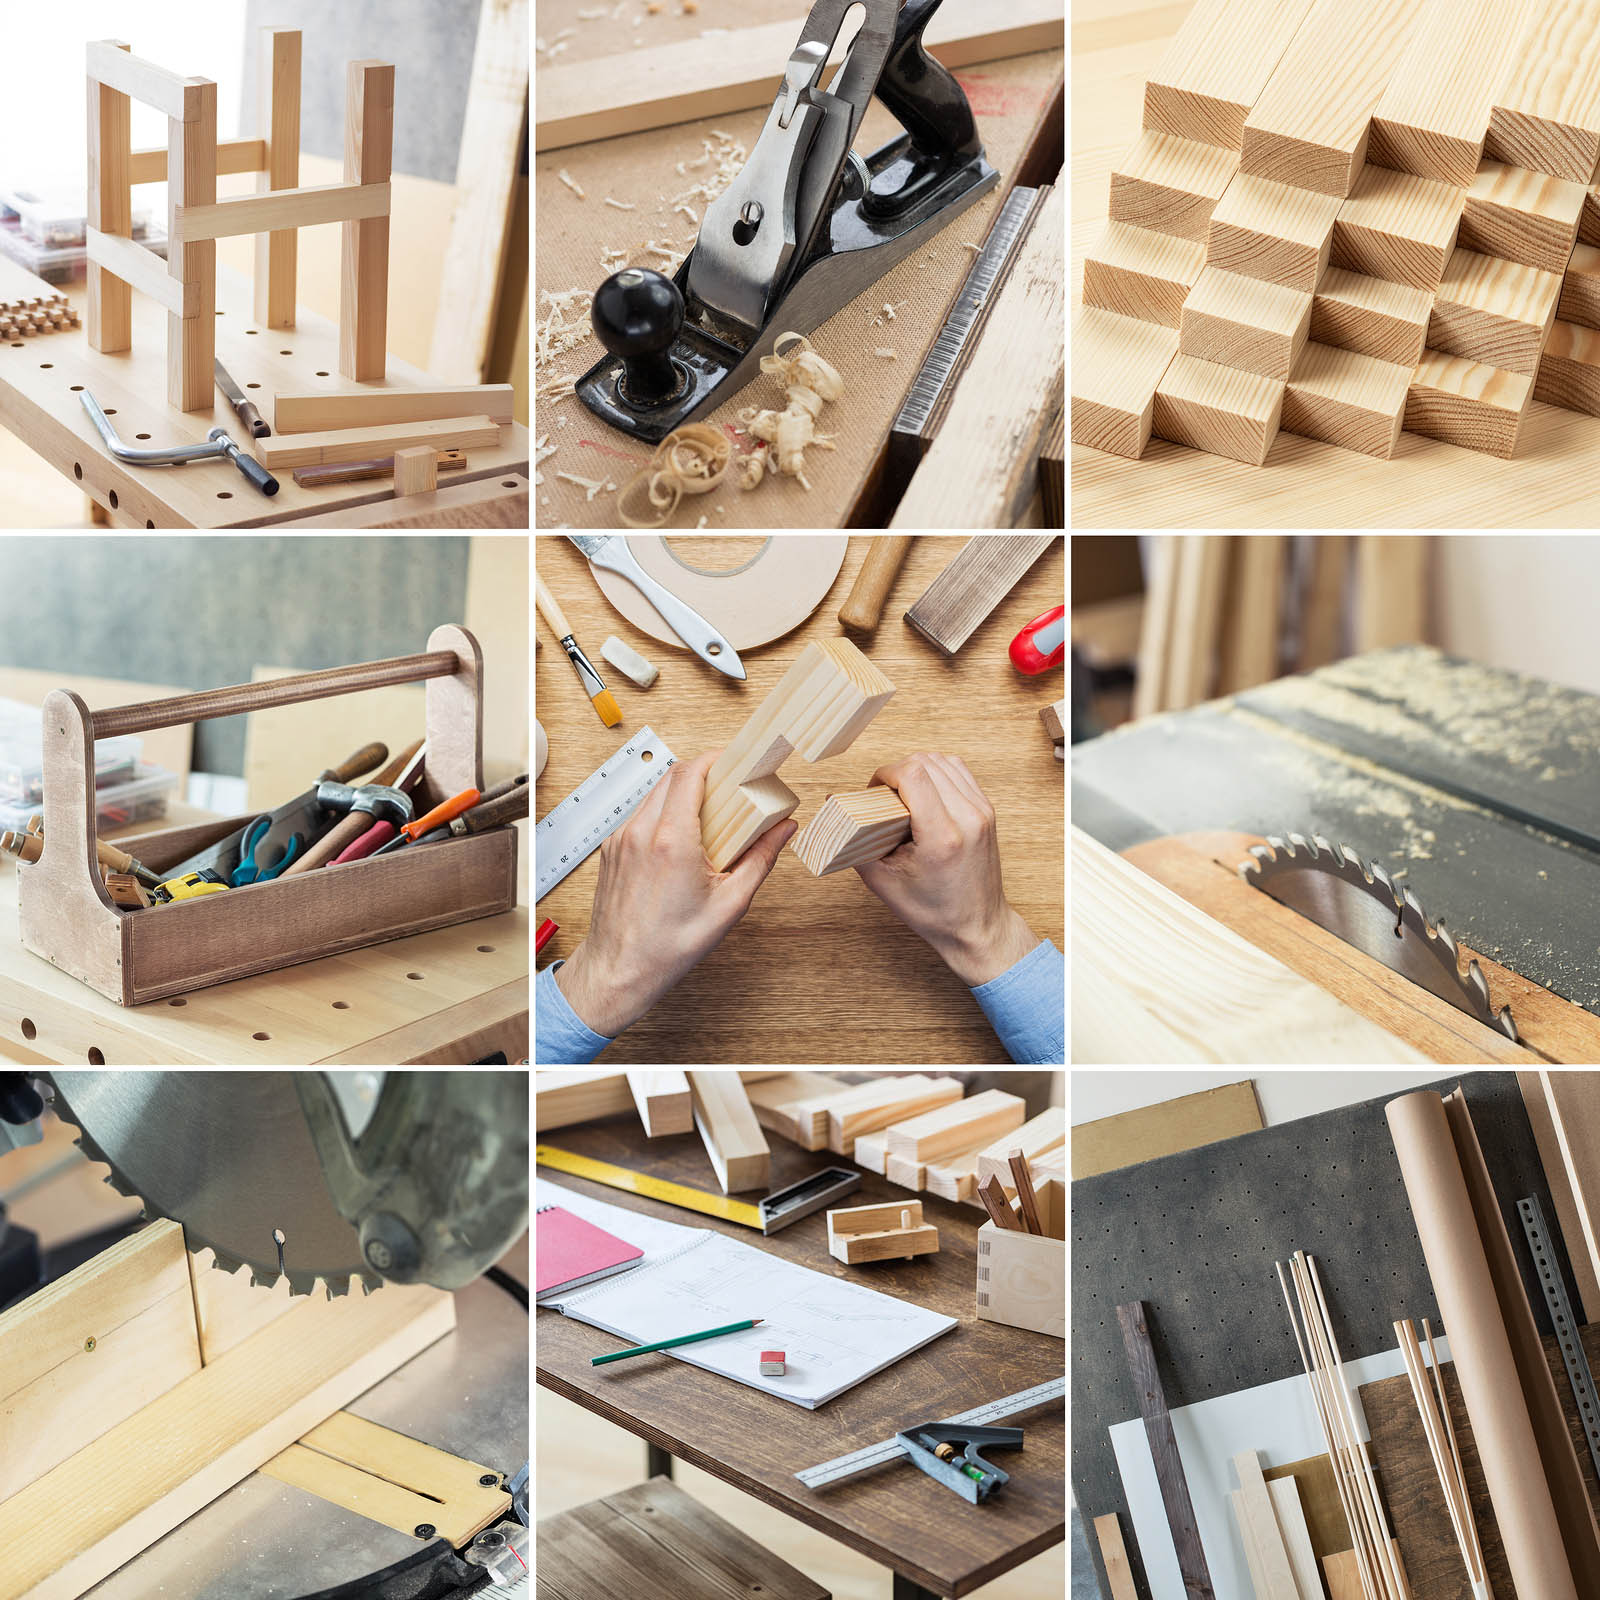 Liverpool Carpenters - Carpentry Services